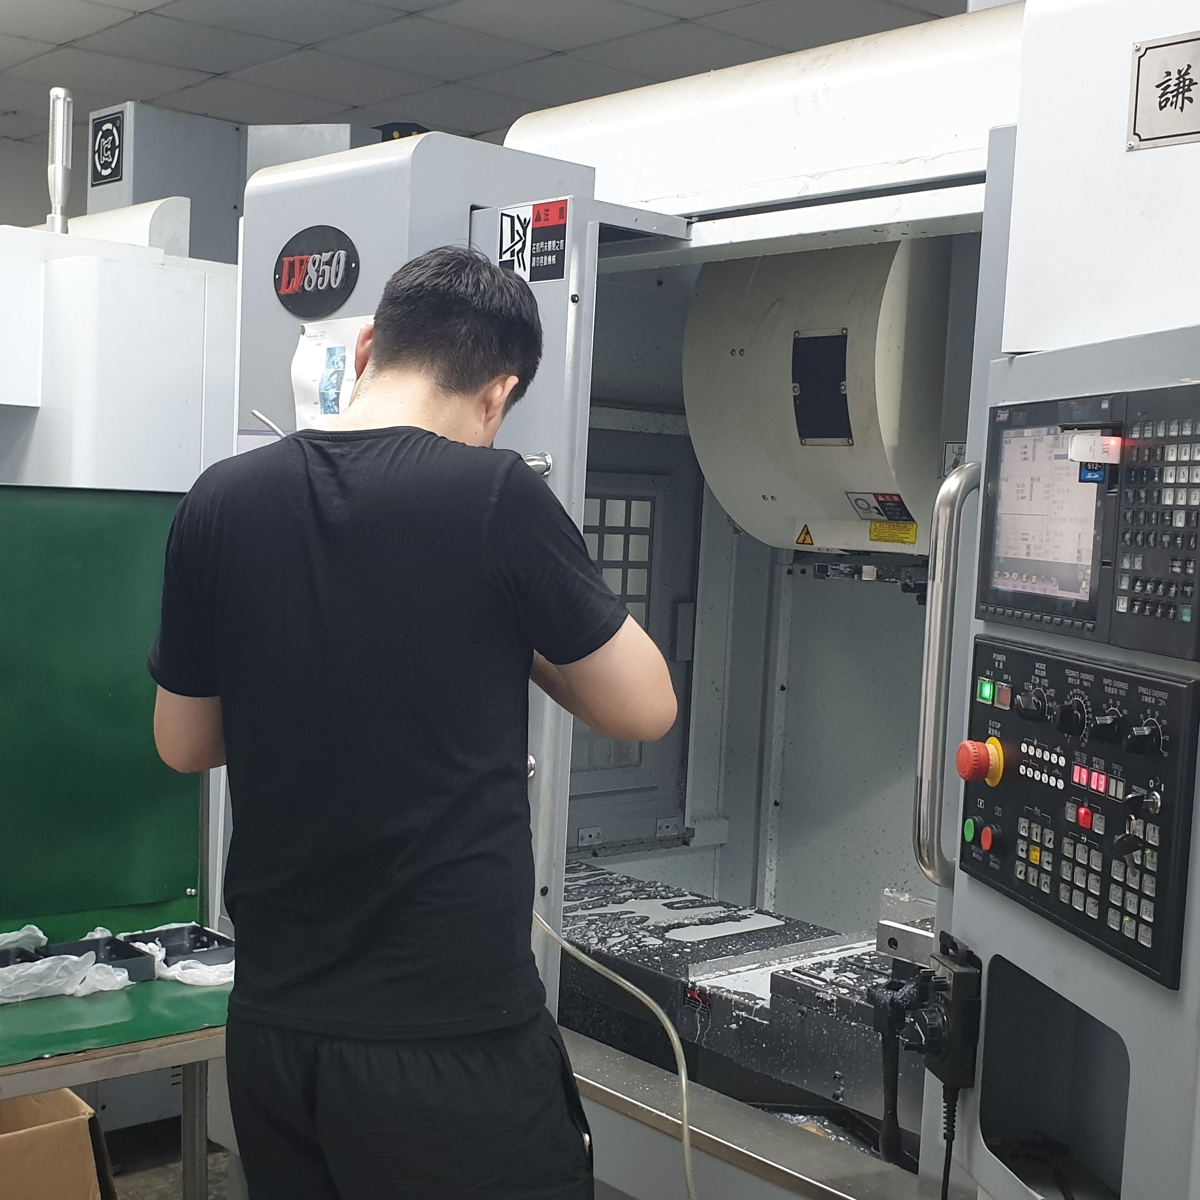 How Davantech became a leading CNC milling company